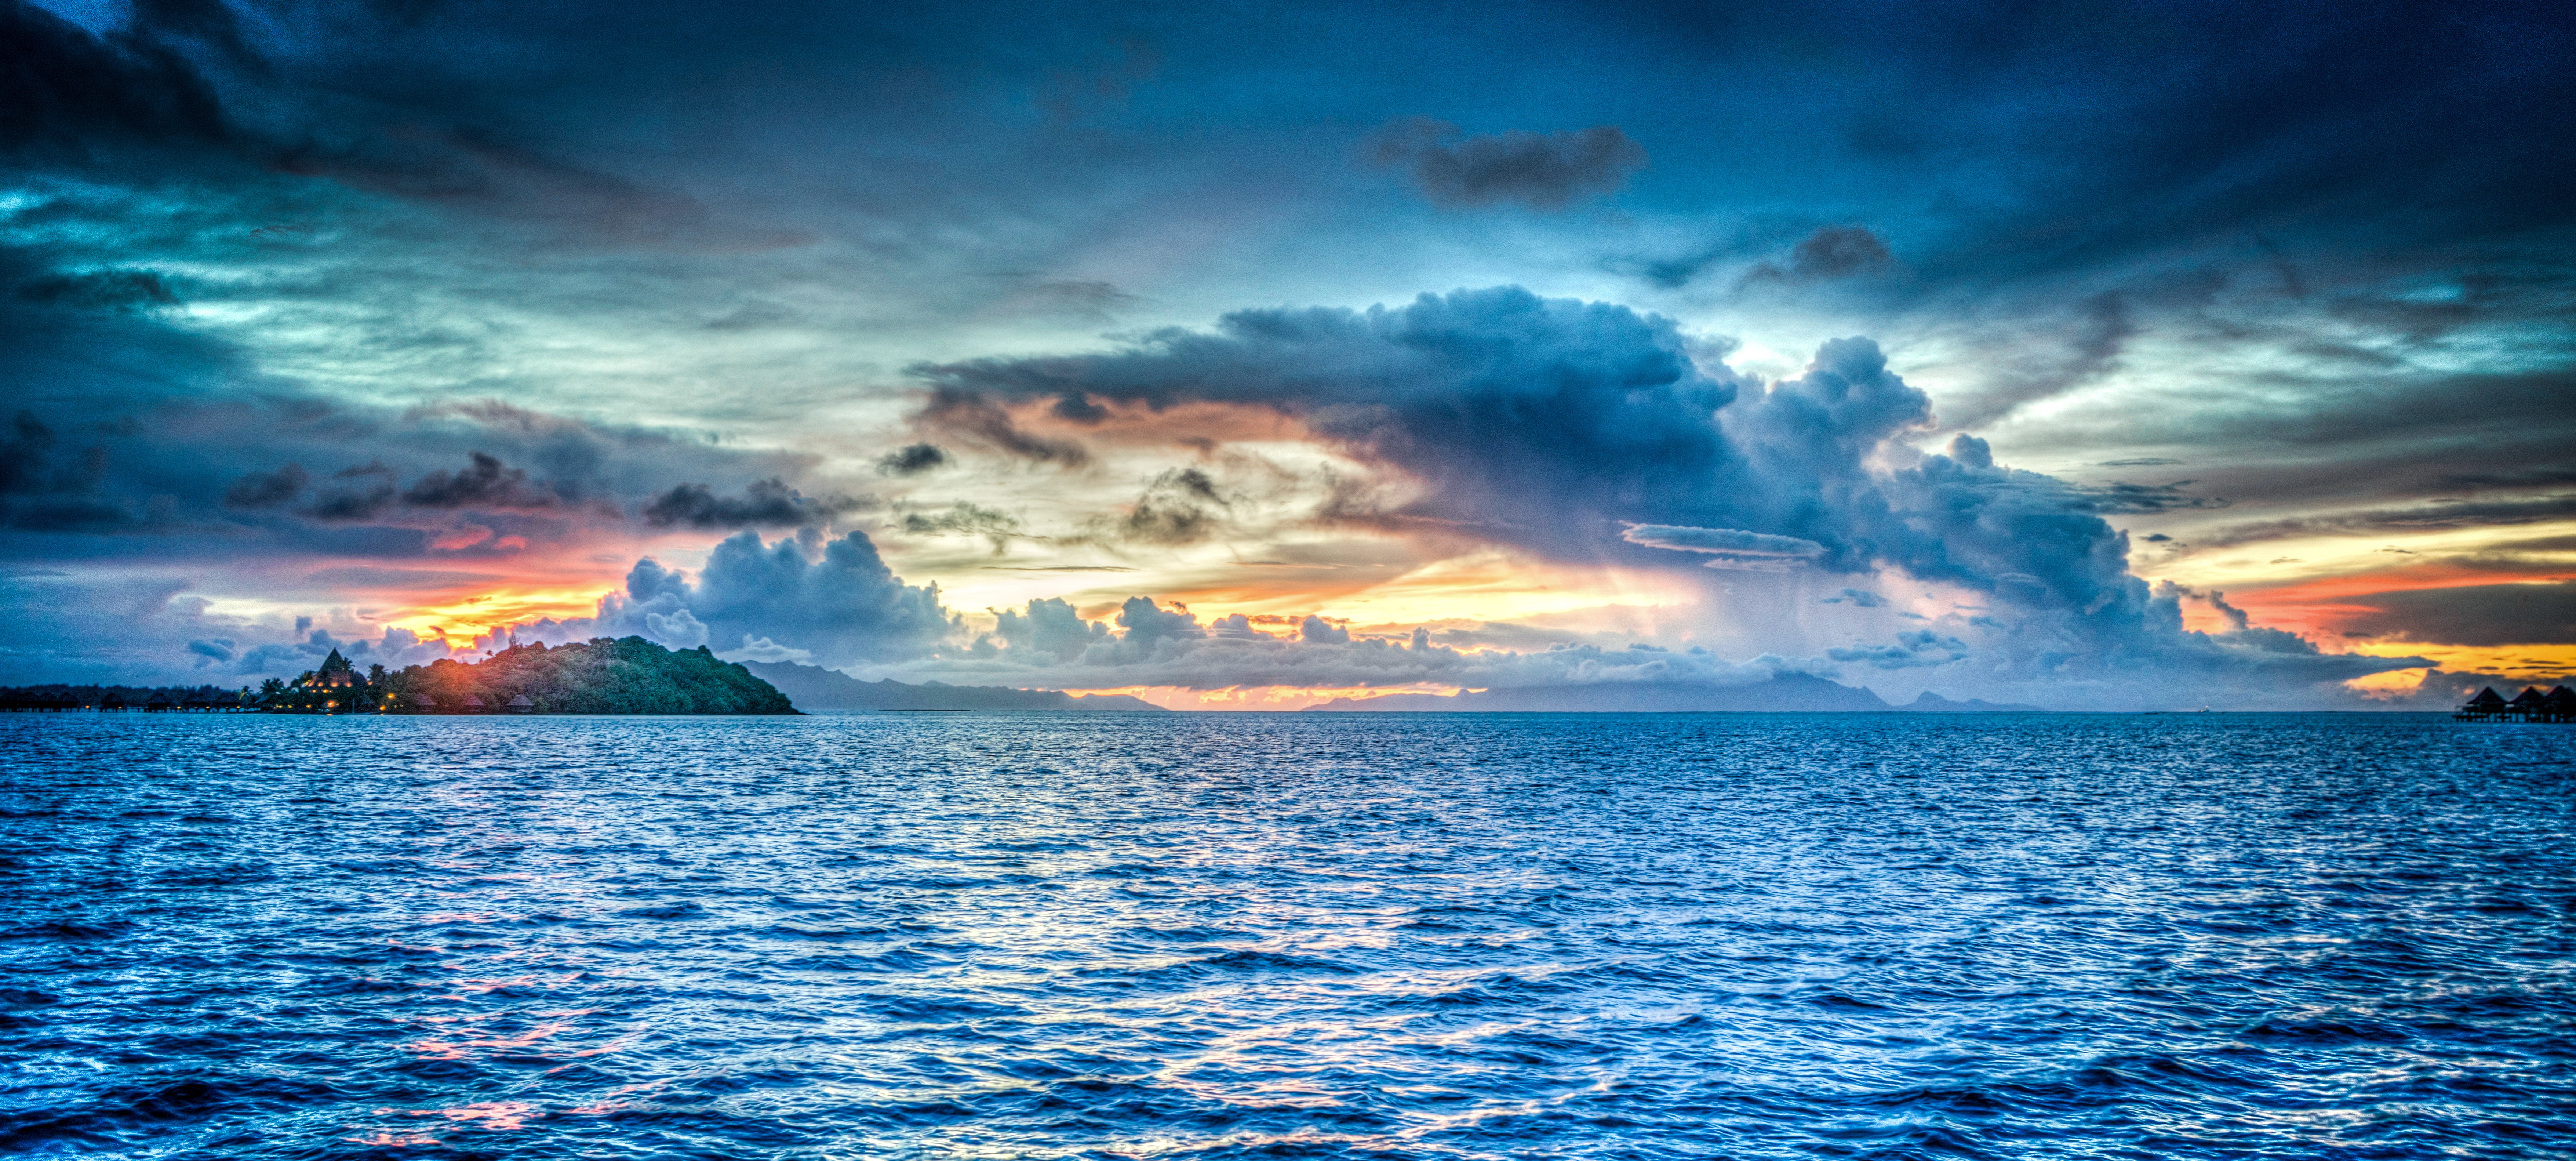 Sea Full Resolution Image | Dreamicus